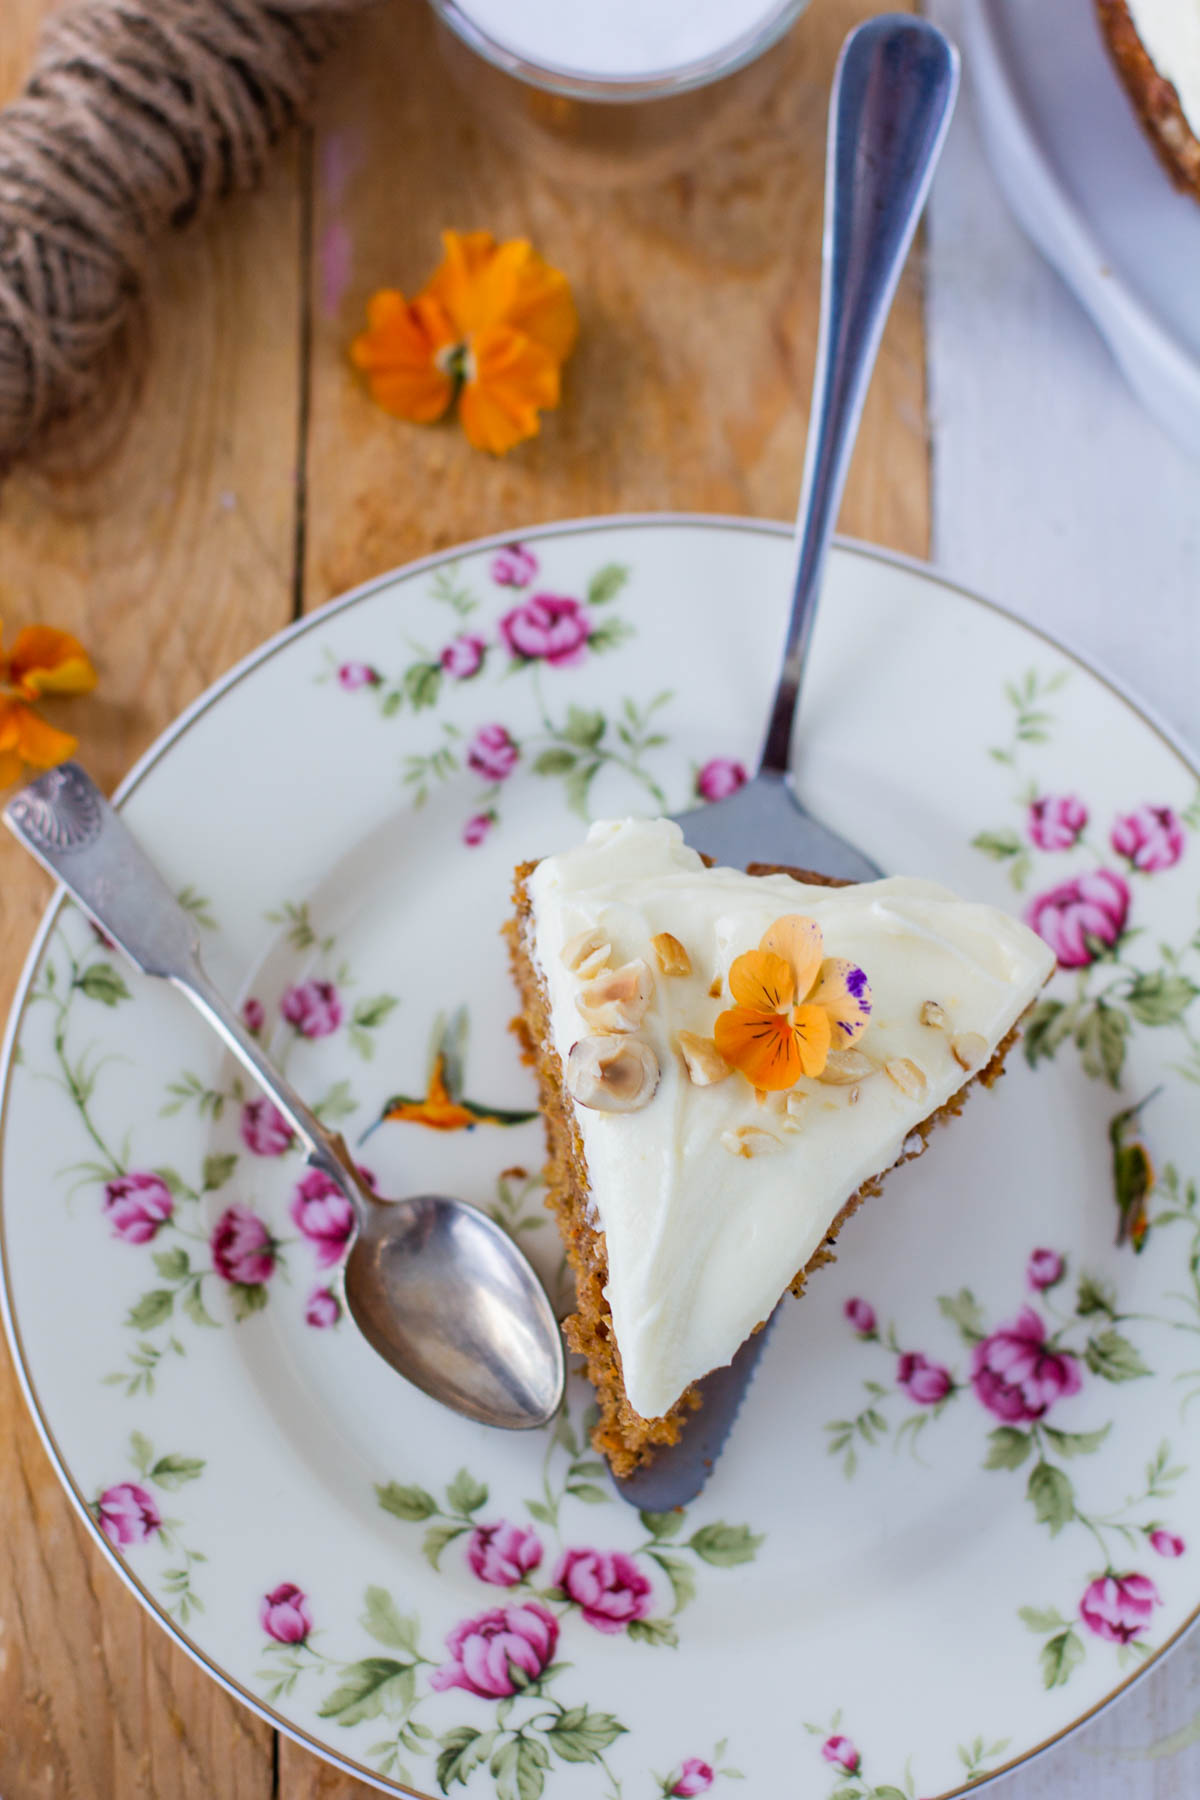 Carrotcake with nuts